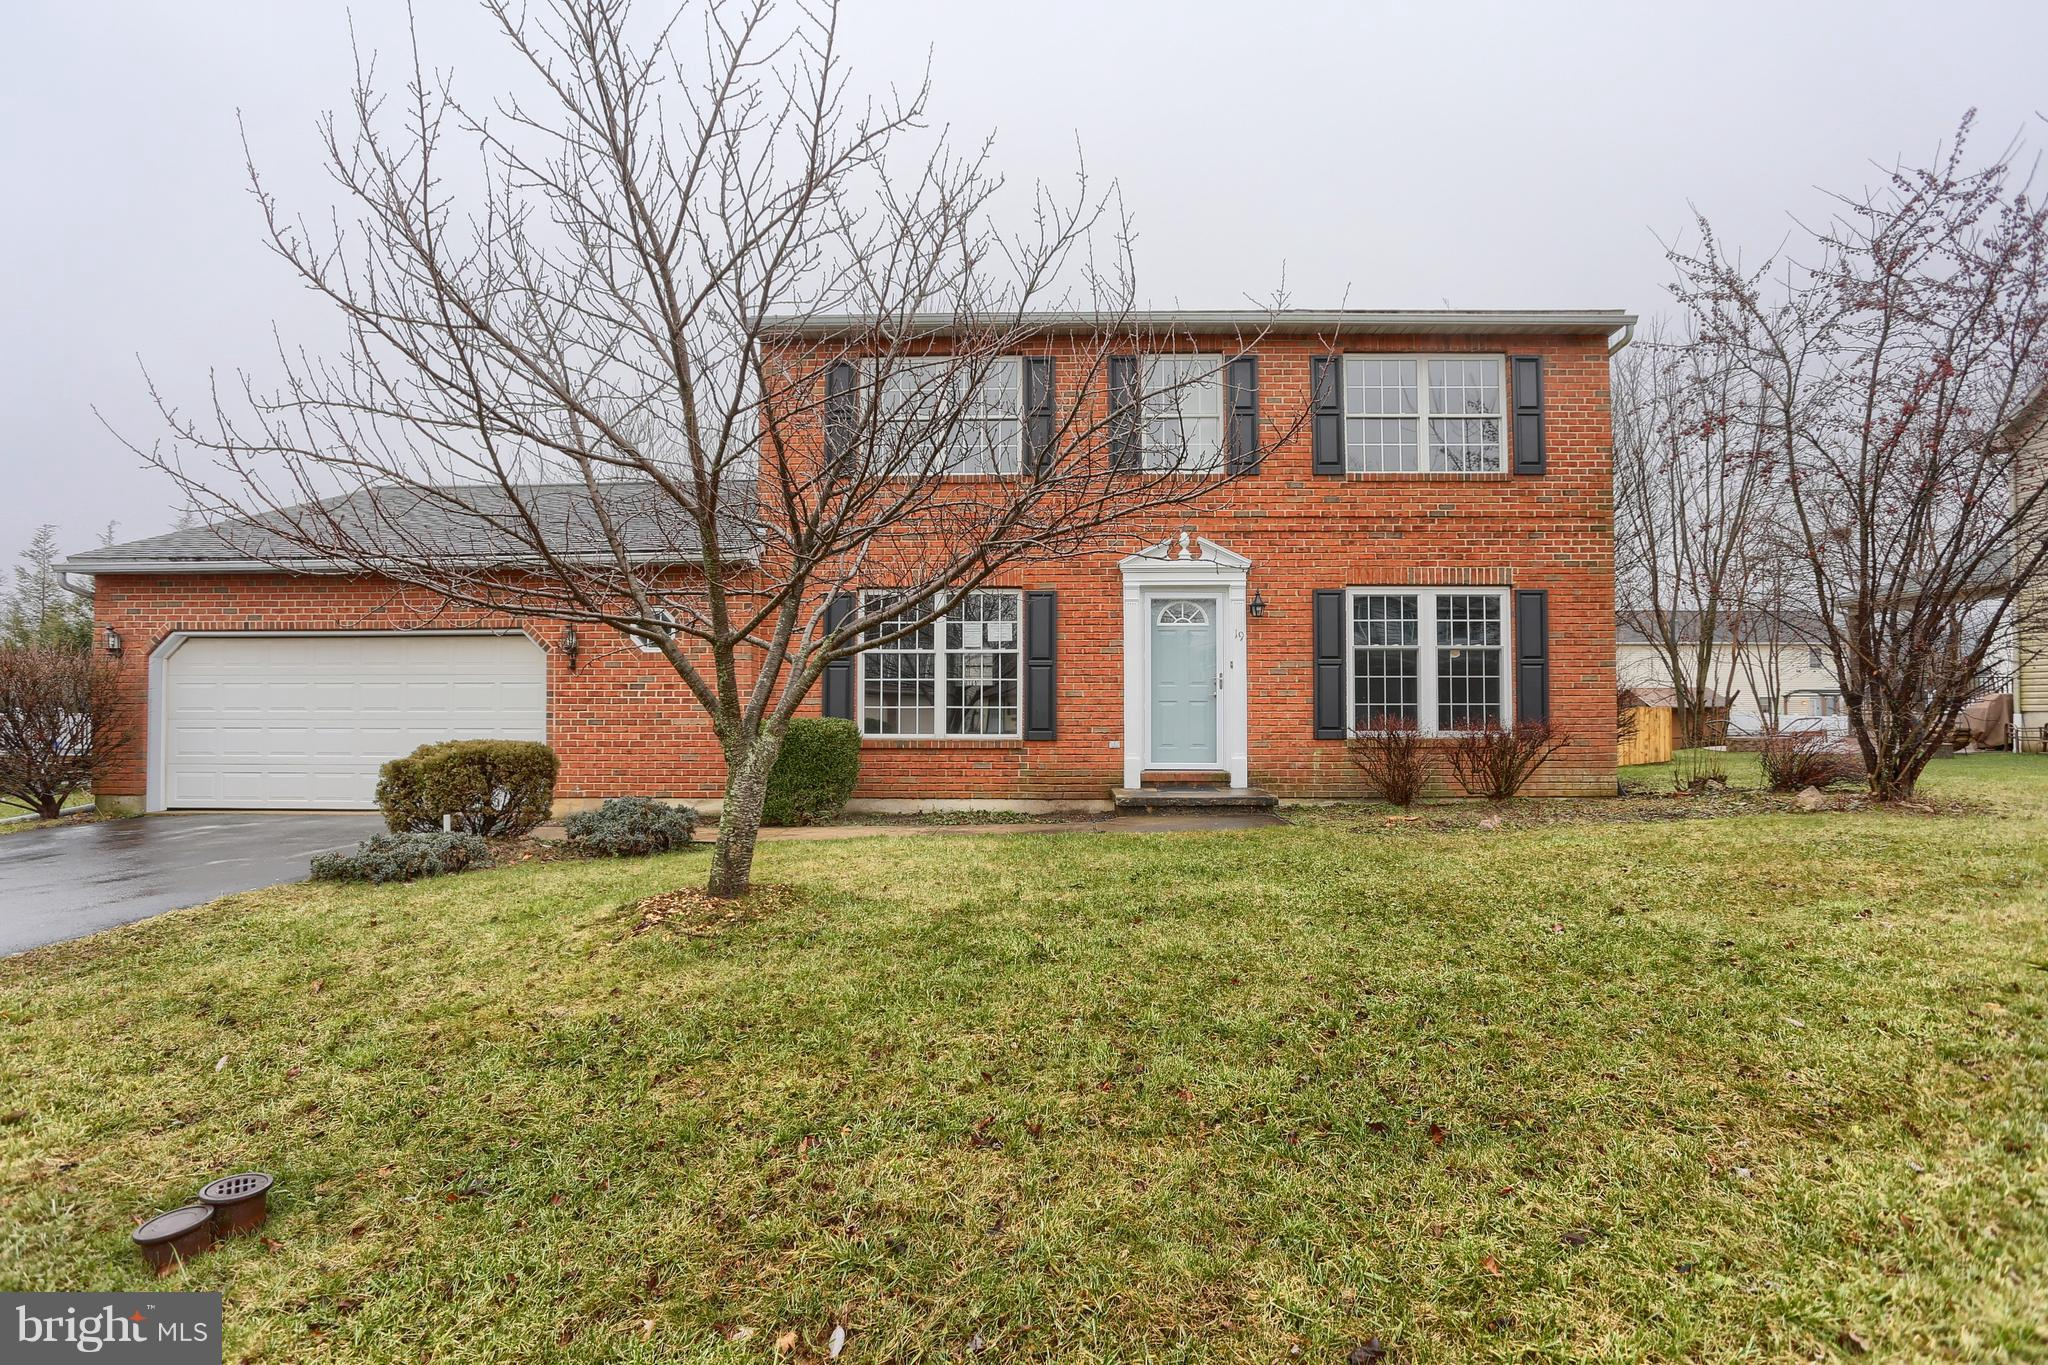 19 CARRIAGE DRIVE, WERNERSVILLE, PA 19565